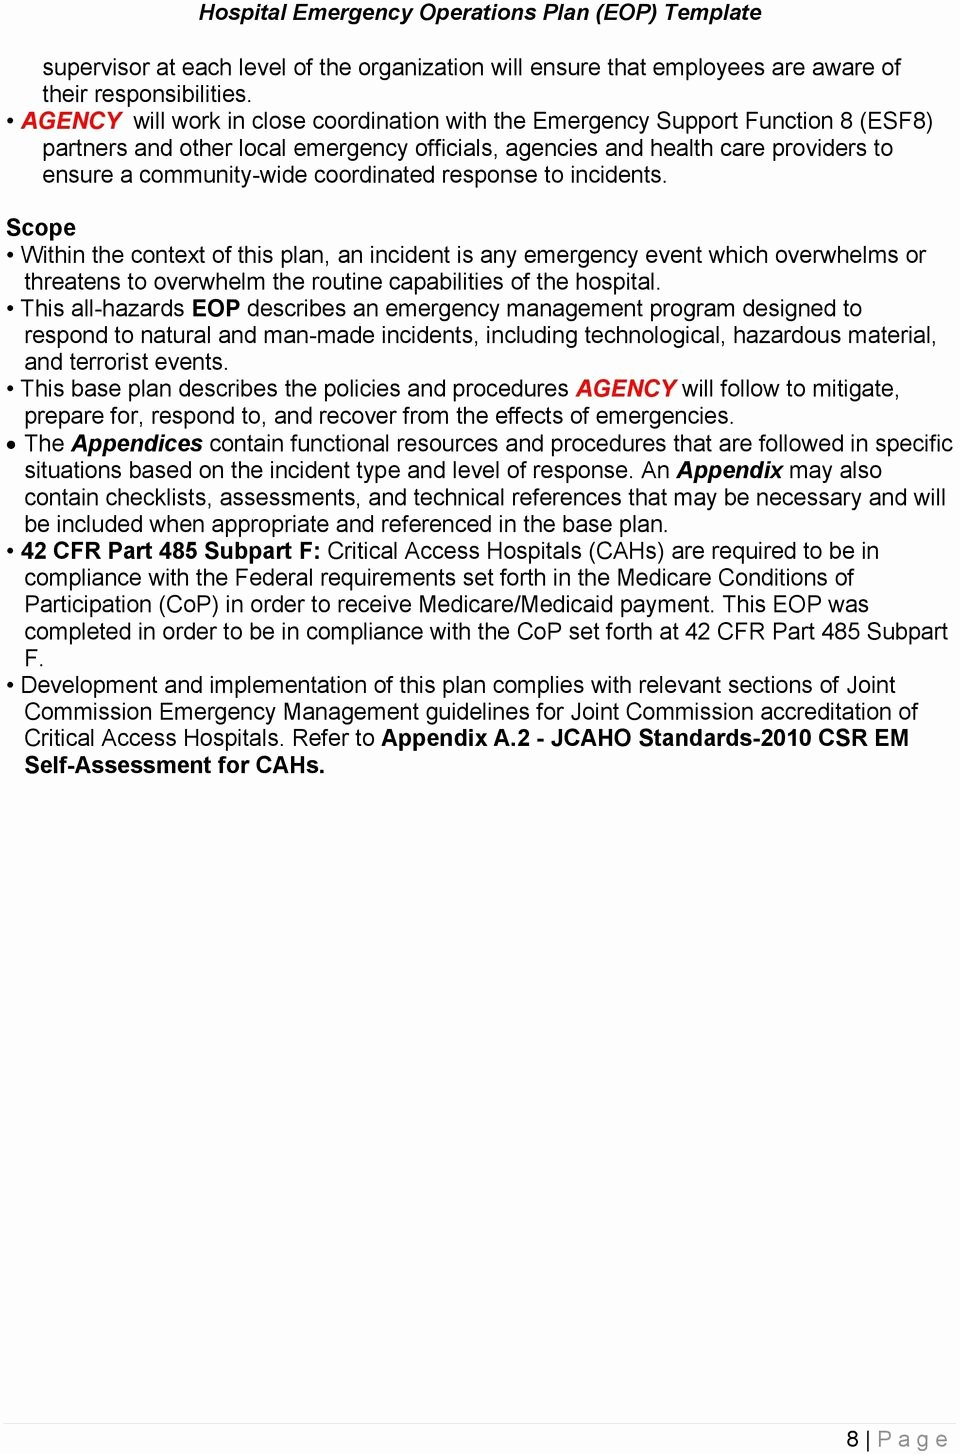 Emergency Operations Plan Template Best Of Hospital Emergency Operations Plan Eop Template Pdf